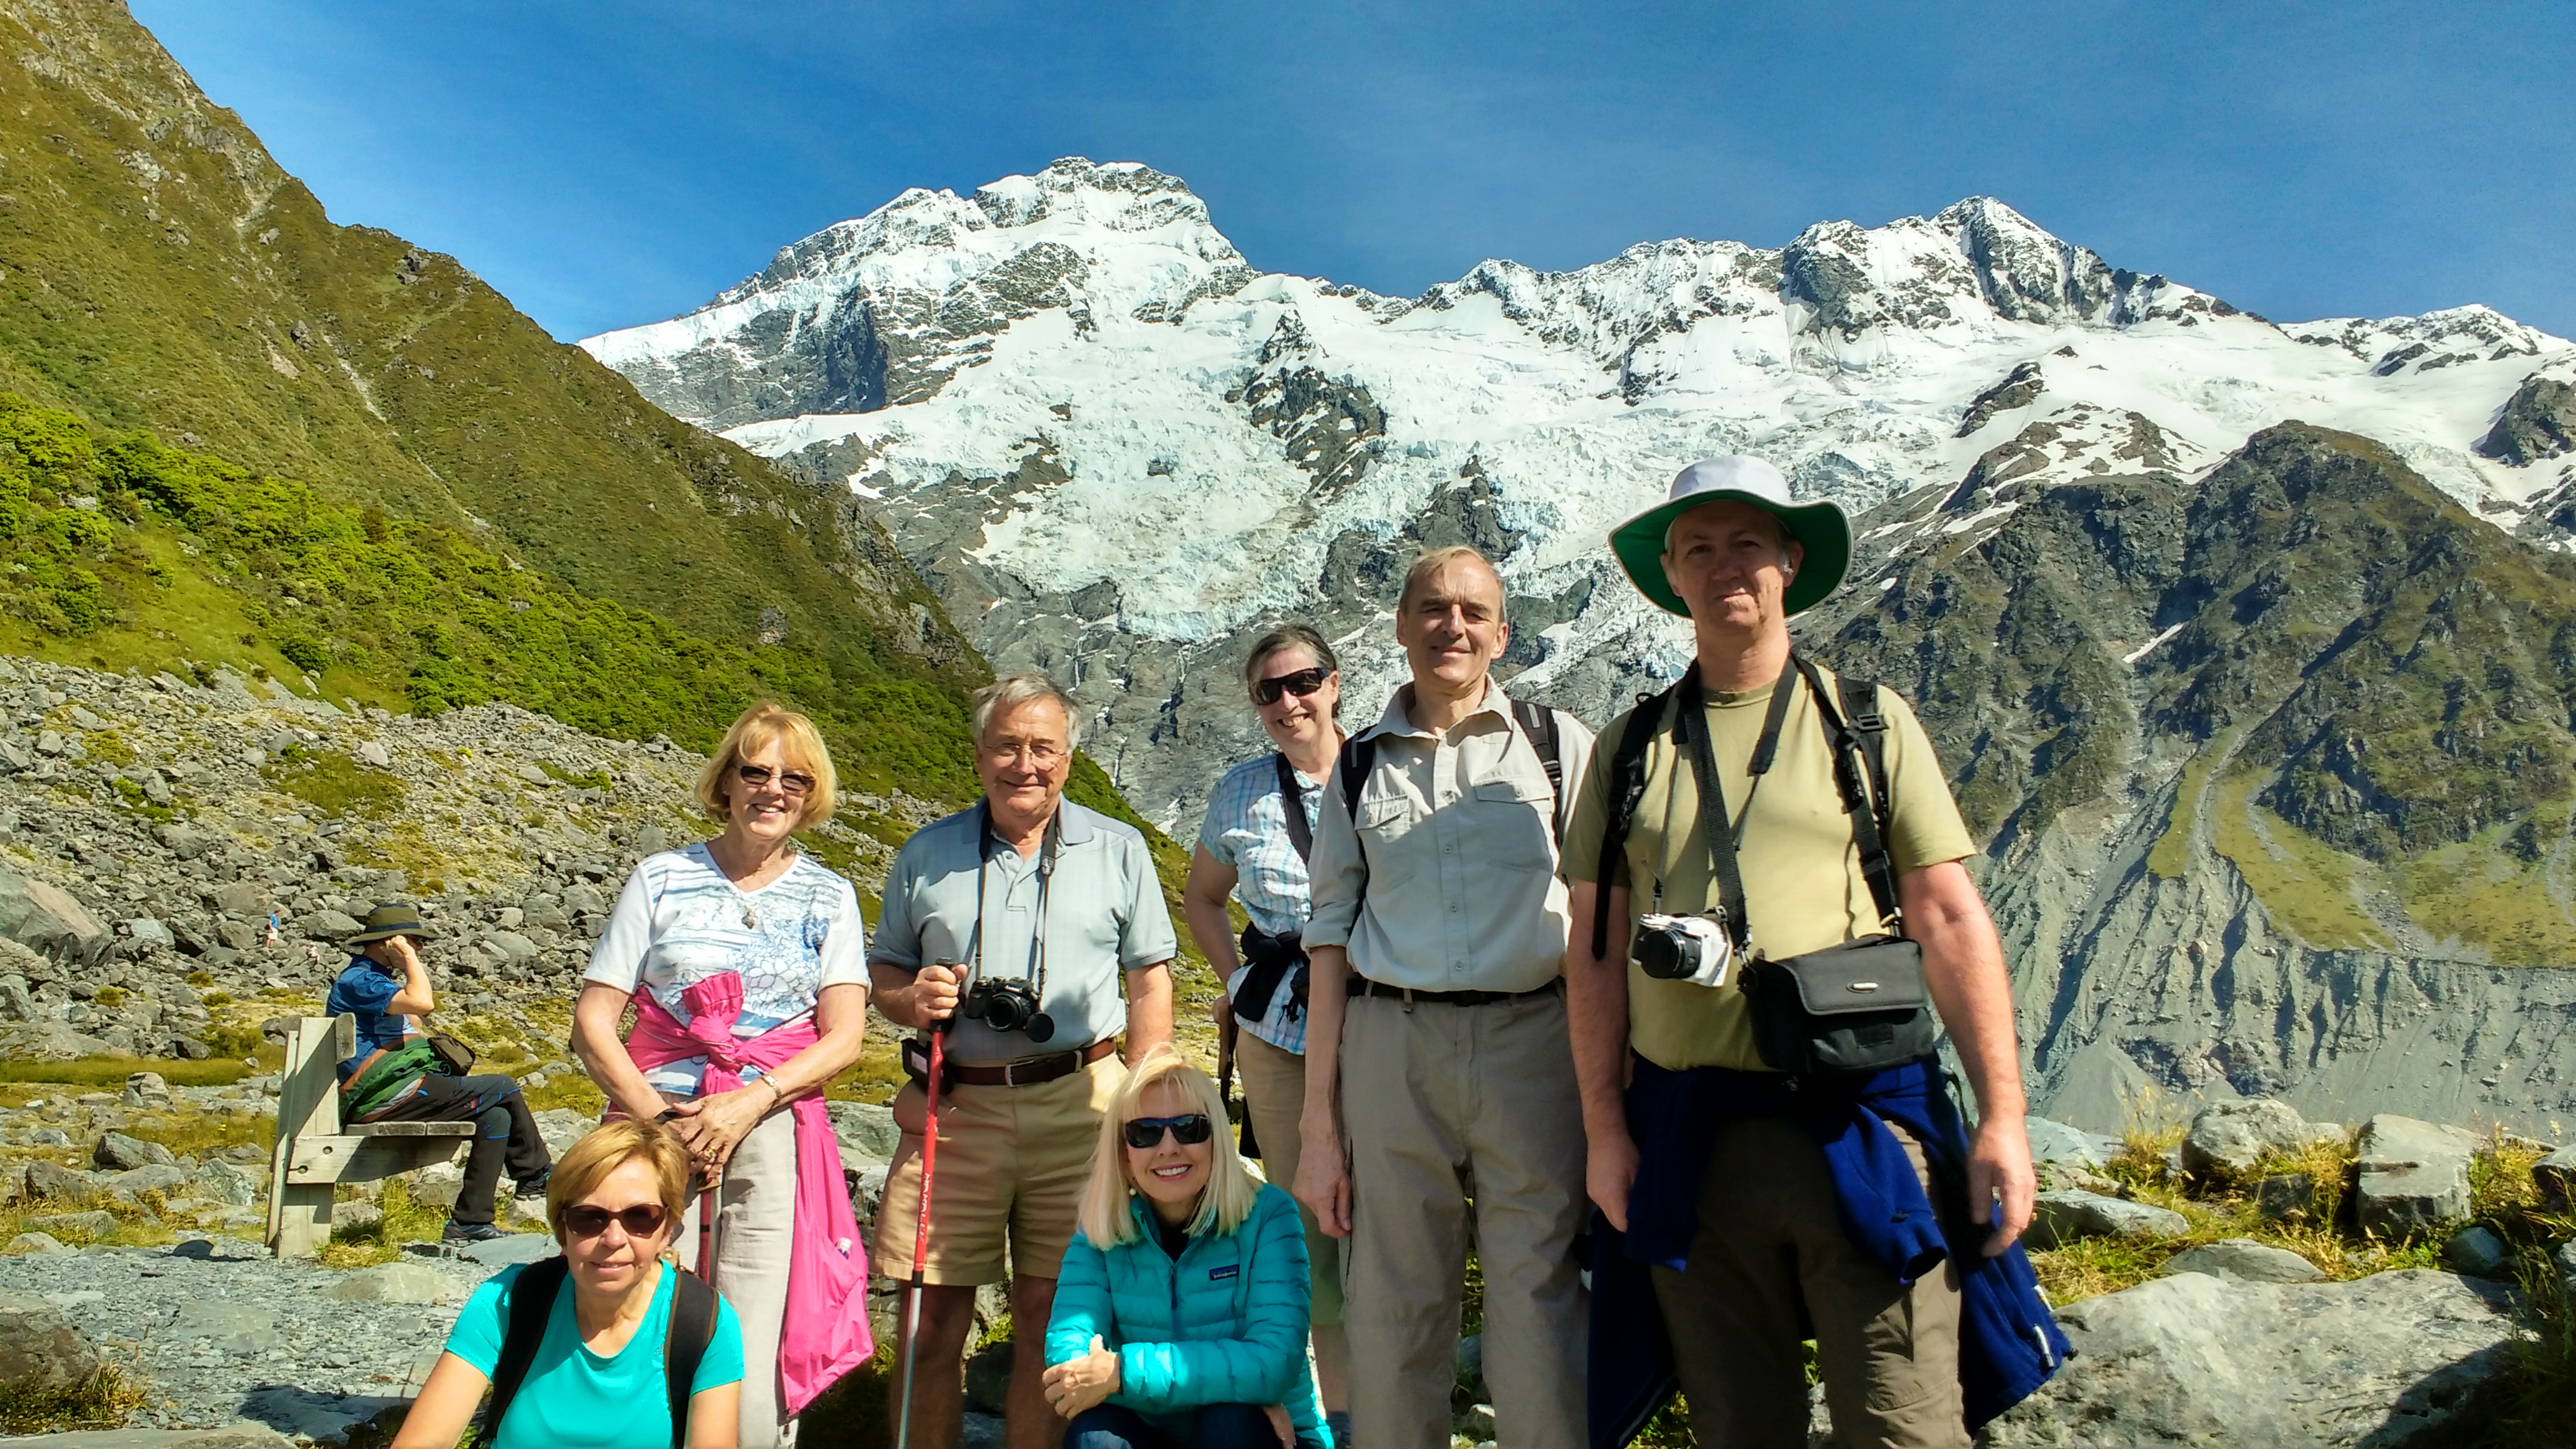 Walking and hiking tours